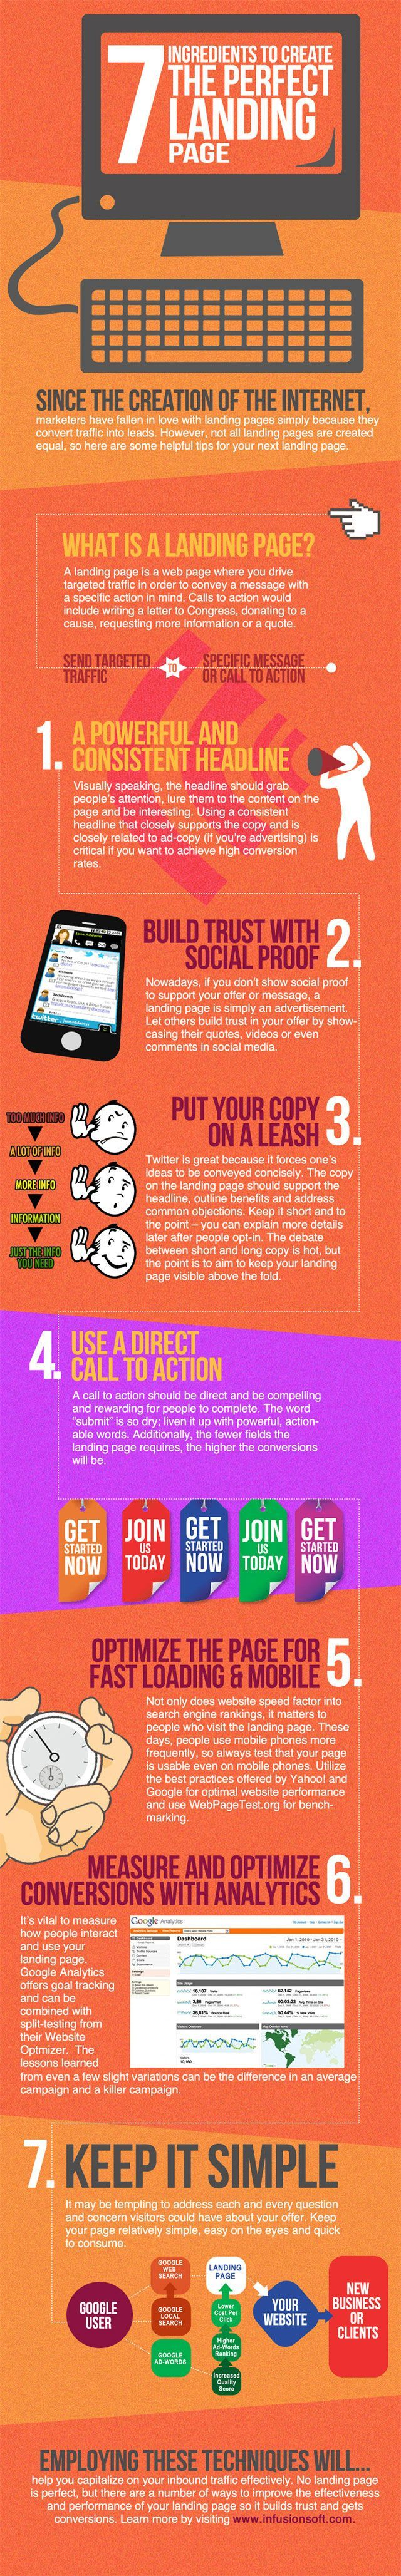 The 7 Ingredients to Create the Perfect Landing Page. #web #marketing #infographic